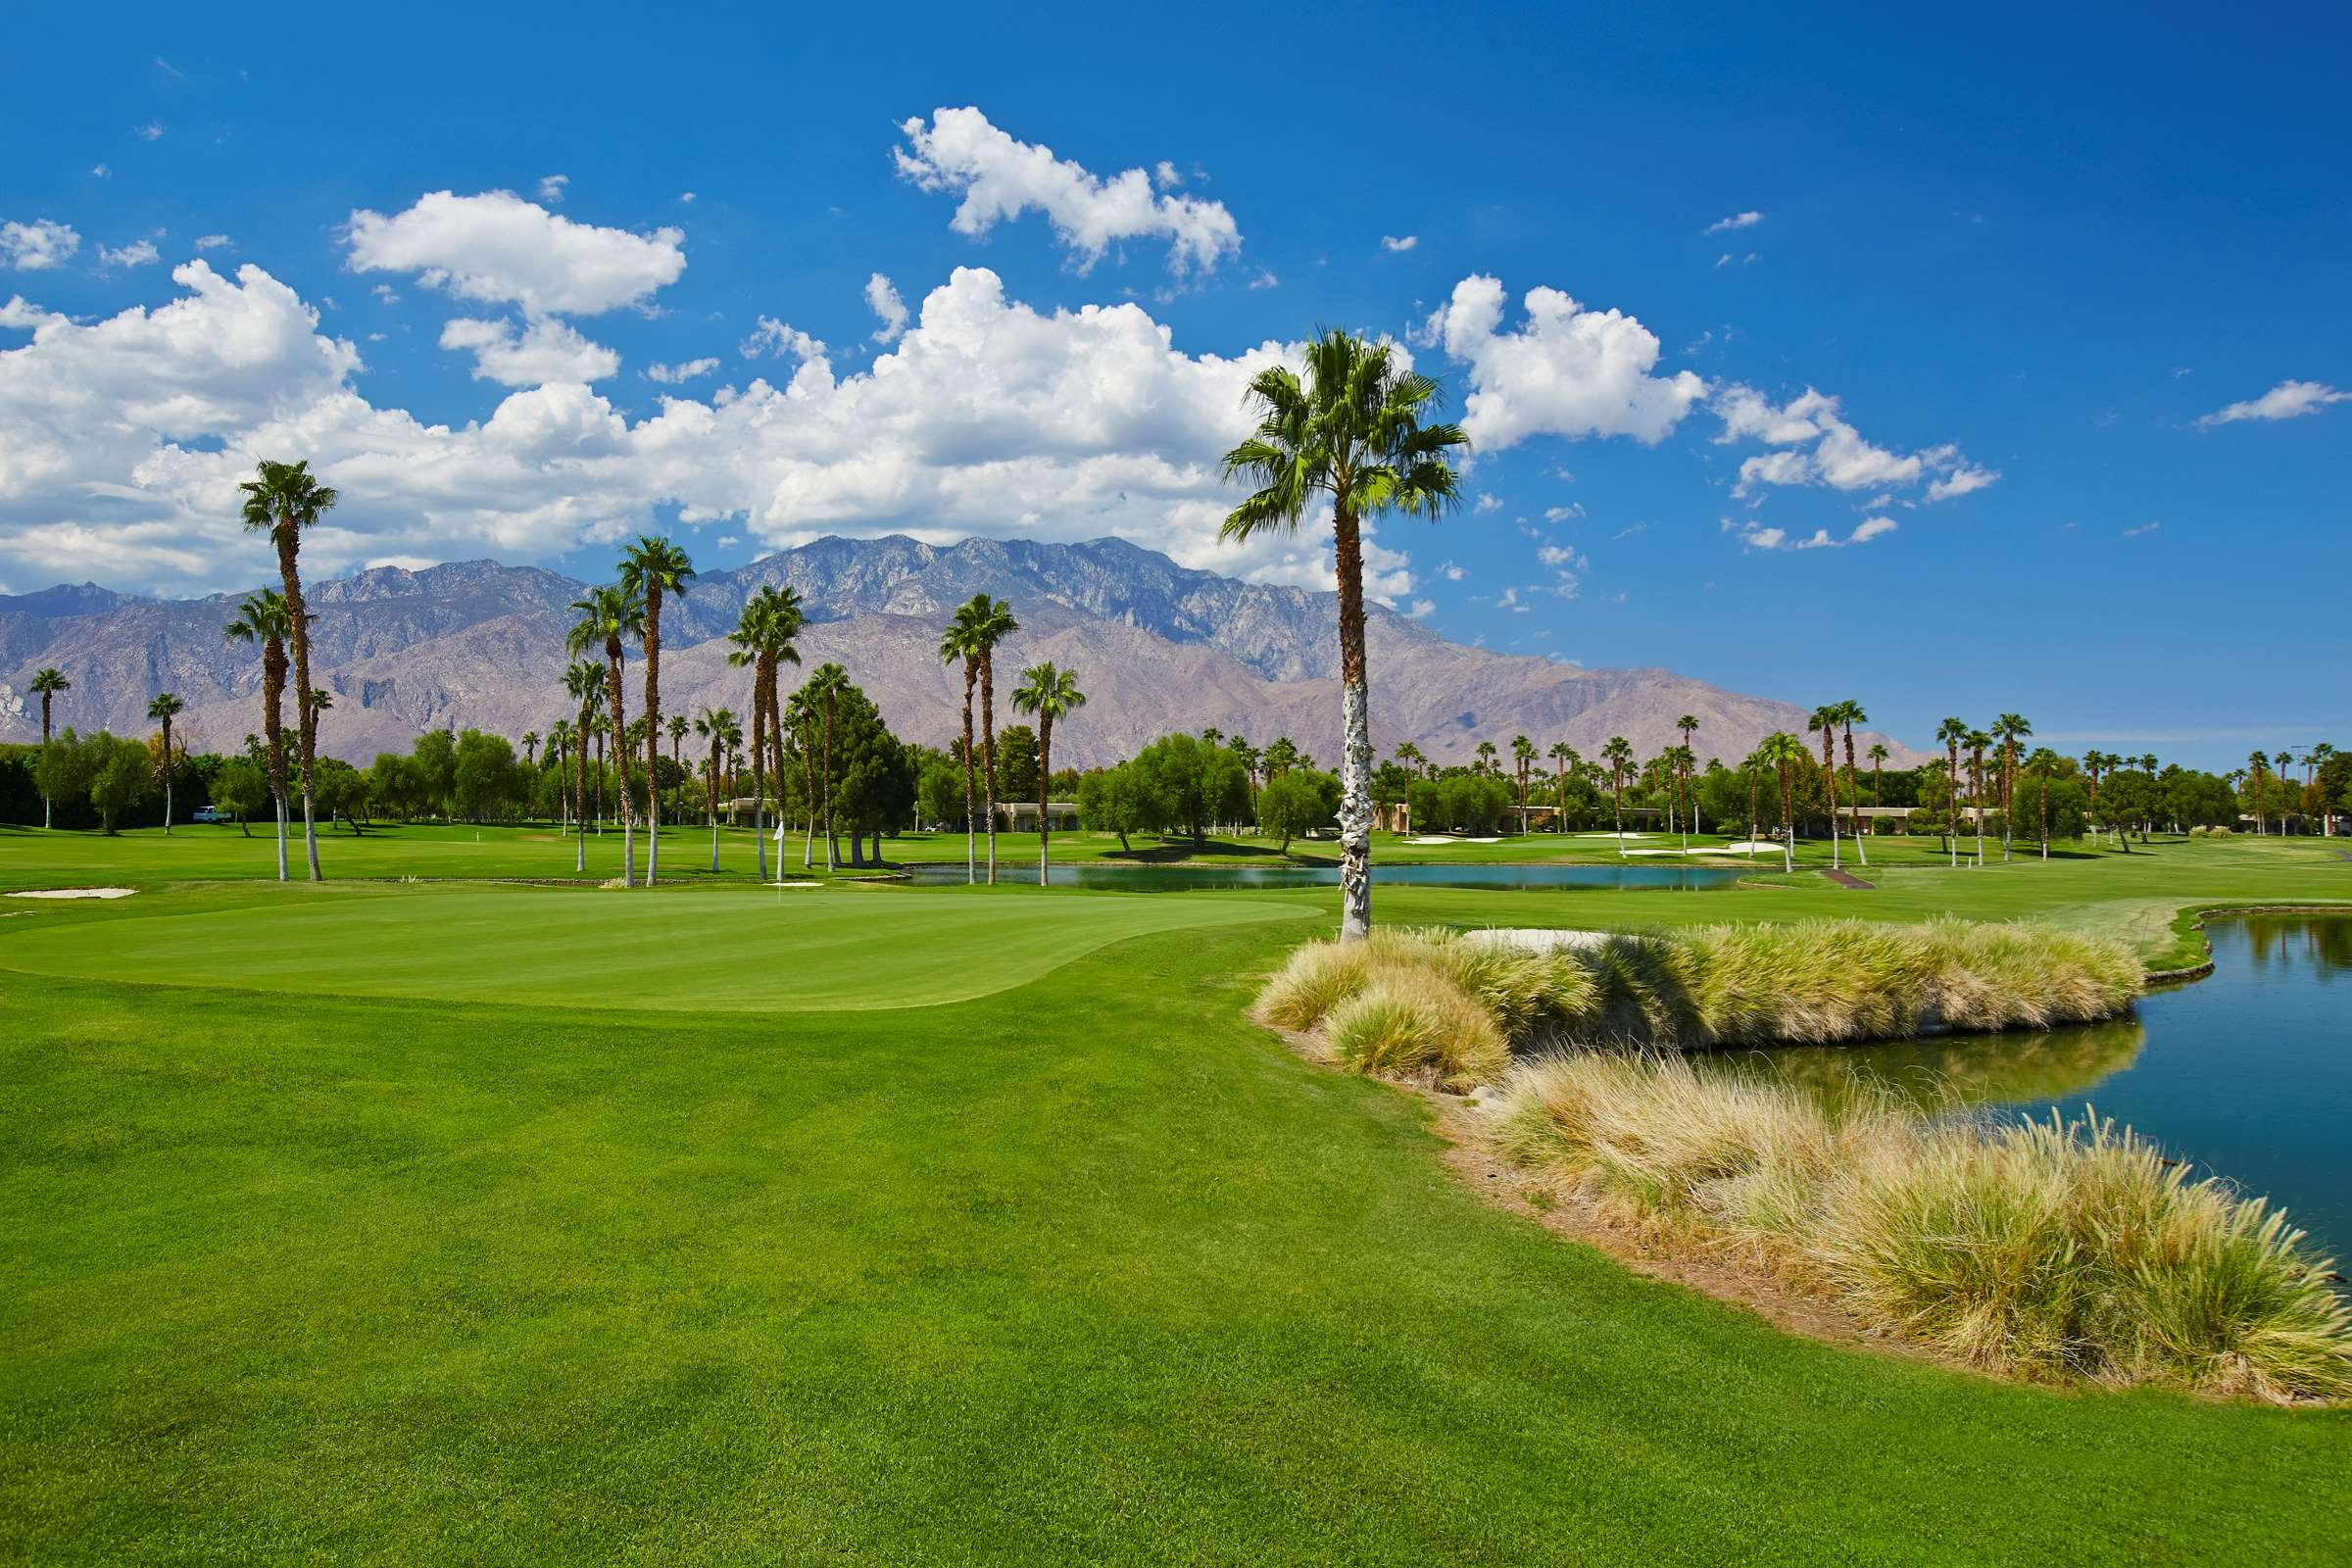 DoubleTree by Hilton Hotel Golf Resort Palm Springs image 46